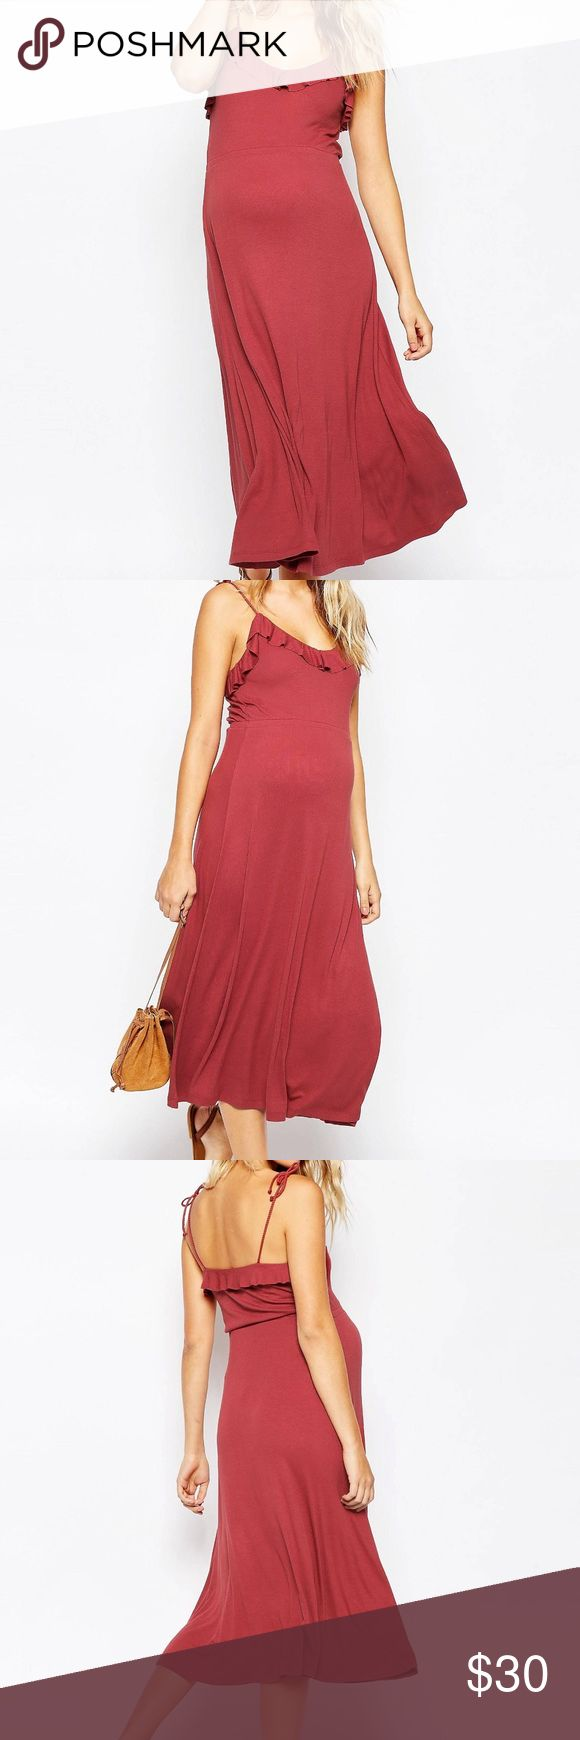 Asos maternity dress sale images braidsmaid dress cocktail asos maternity dresses sale choice image braidsmaid dress asos maternity dresses sale gallery braidsmaid dress cocktail ombrellifo Image collections